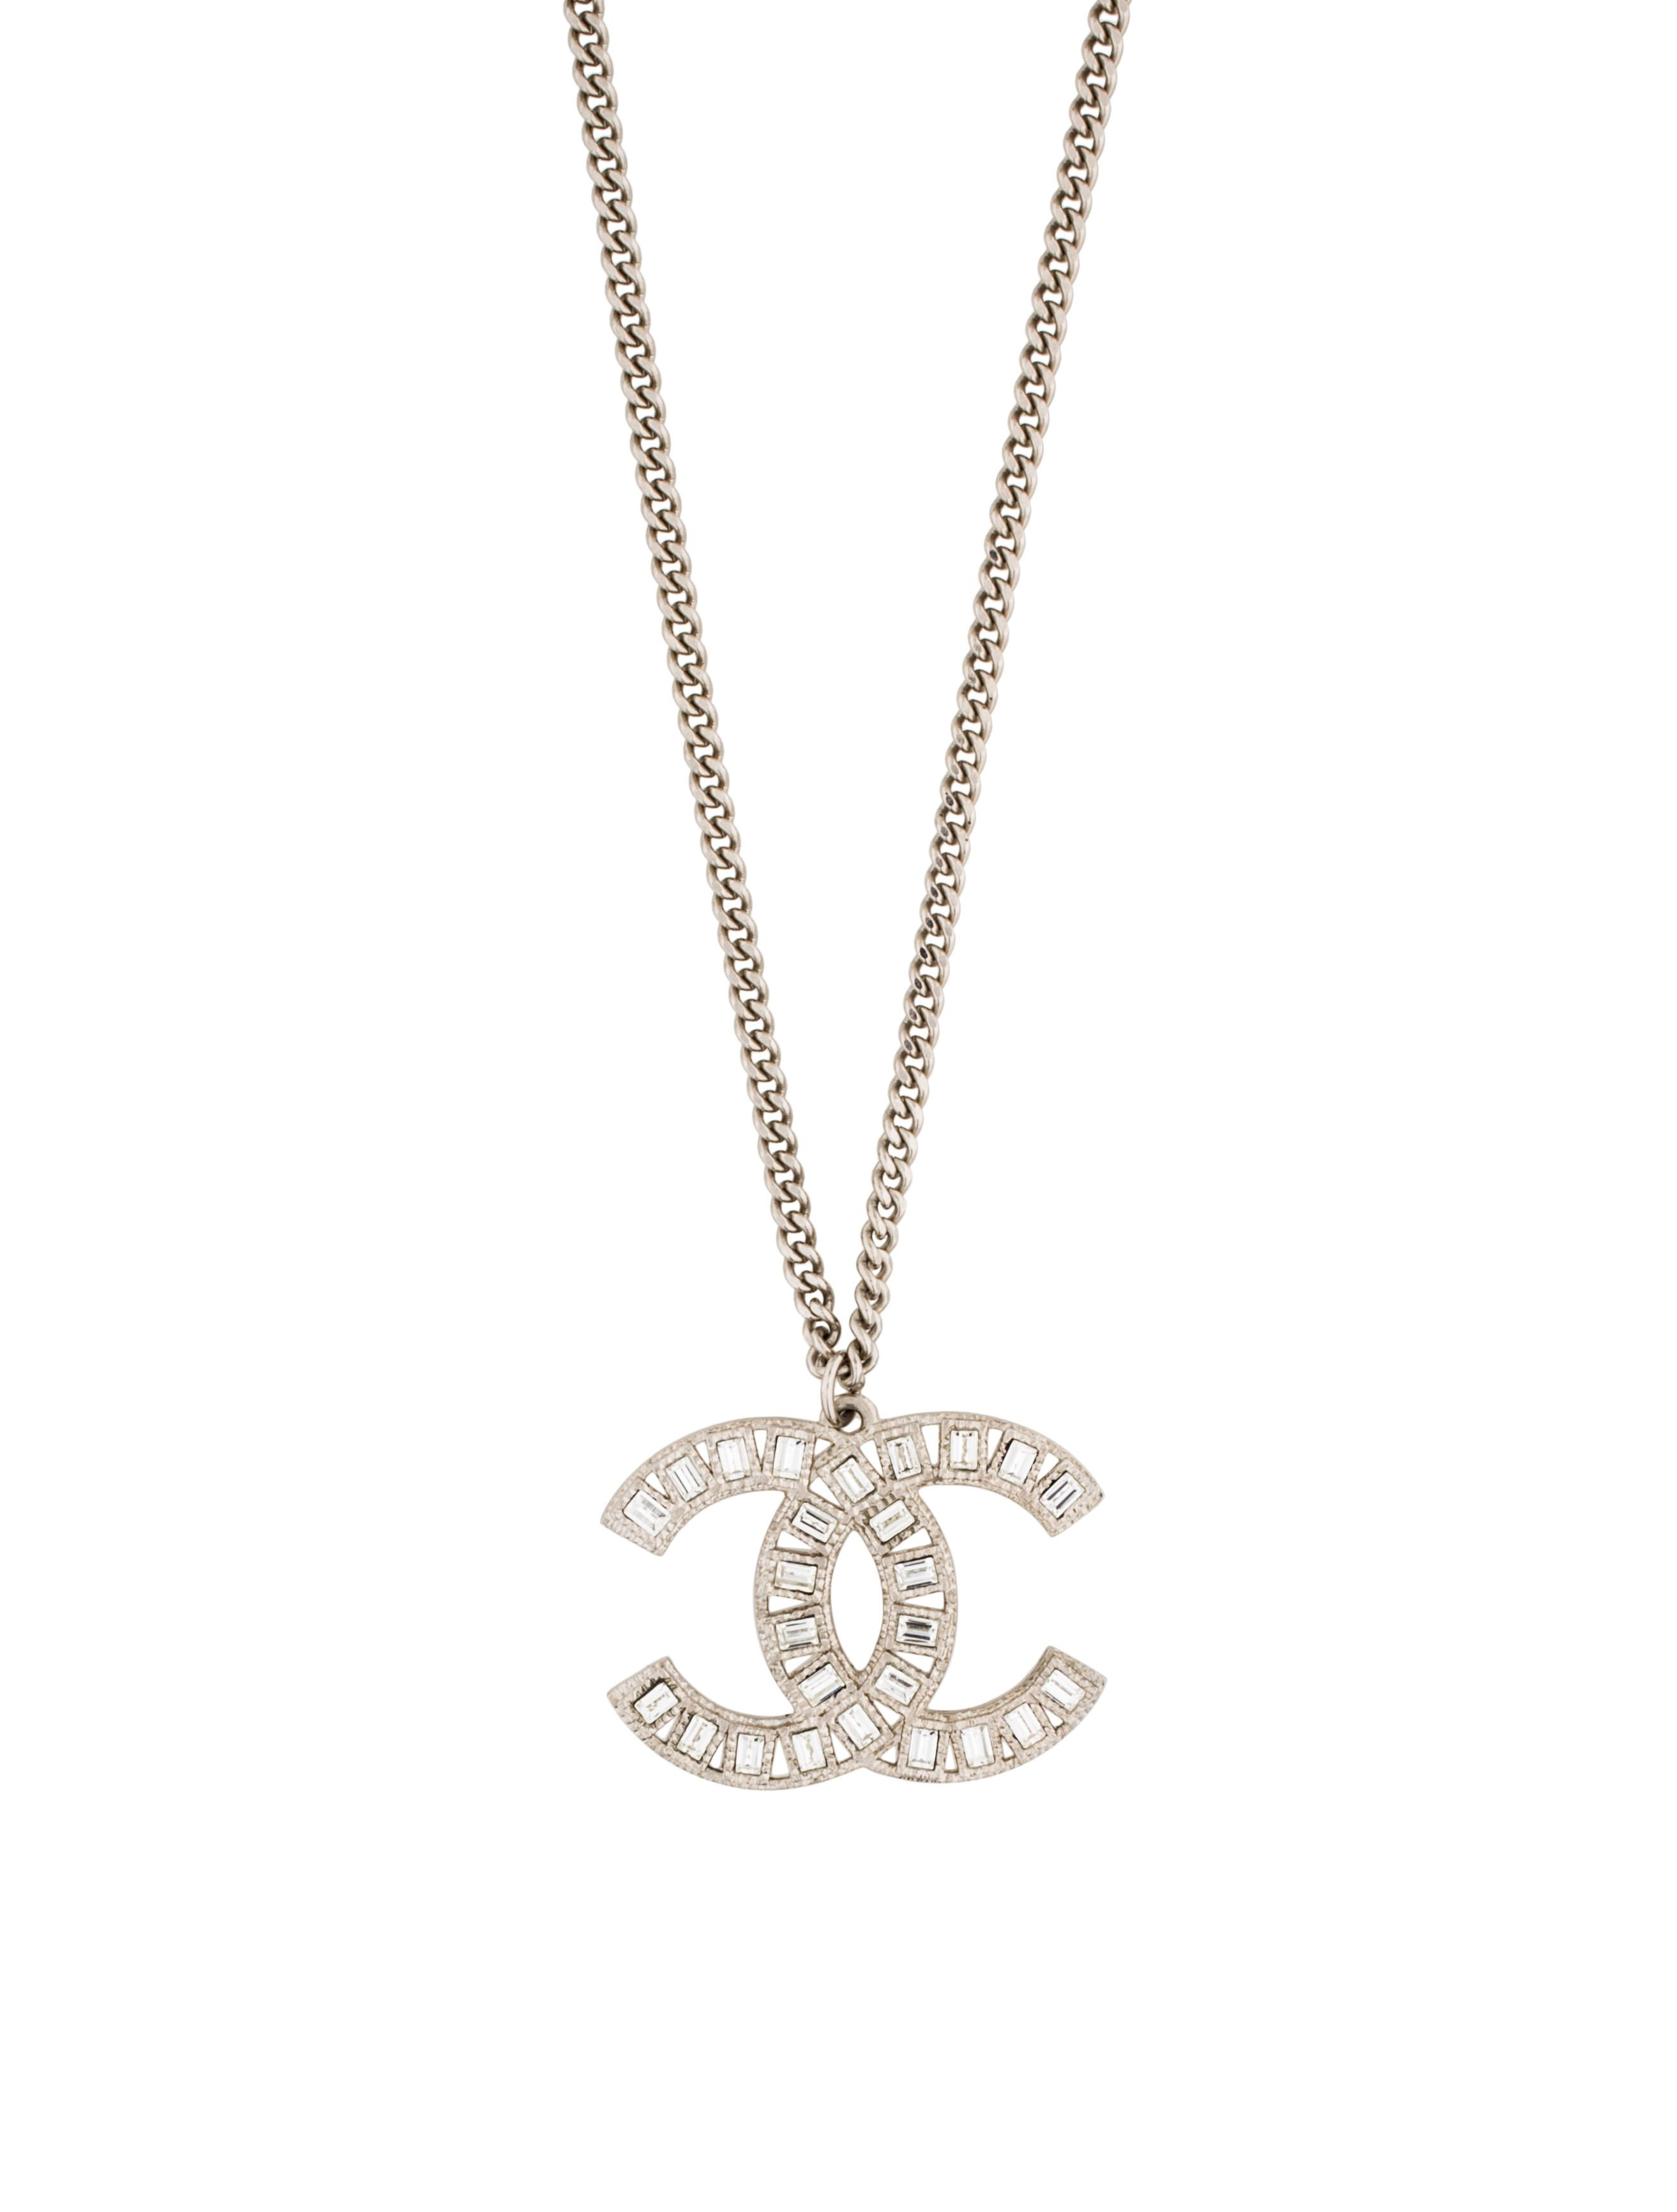 Chanel Crystal CC Pendant Necklace in 2019.